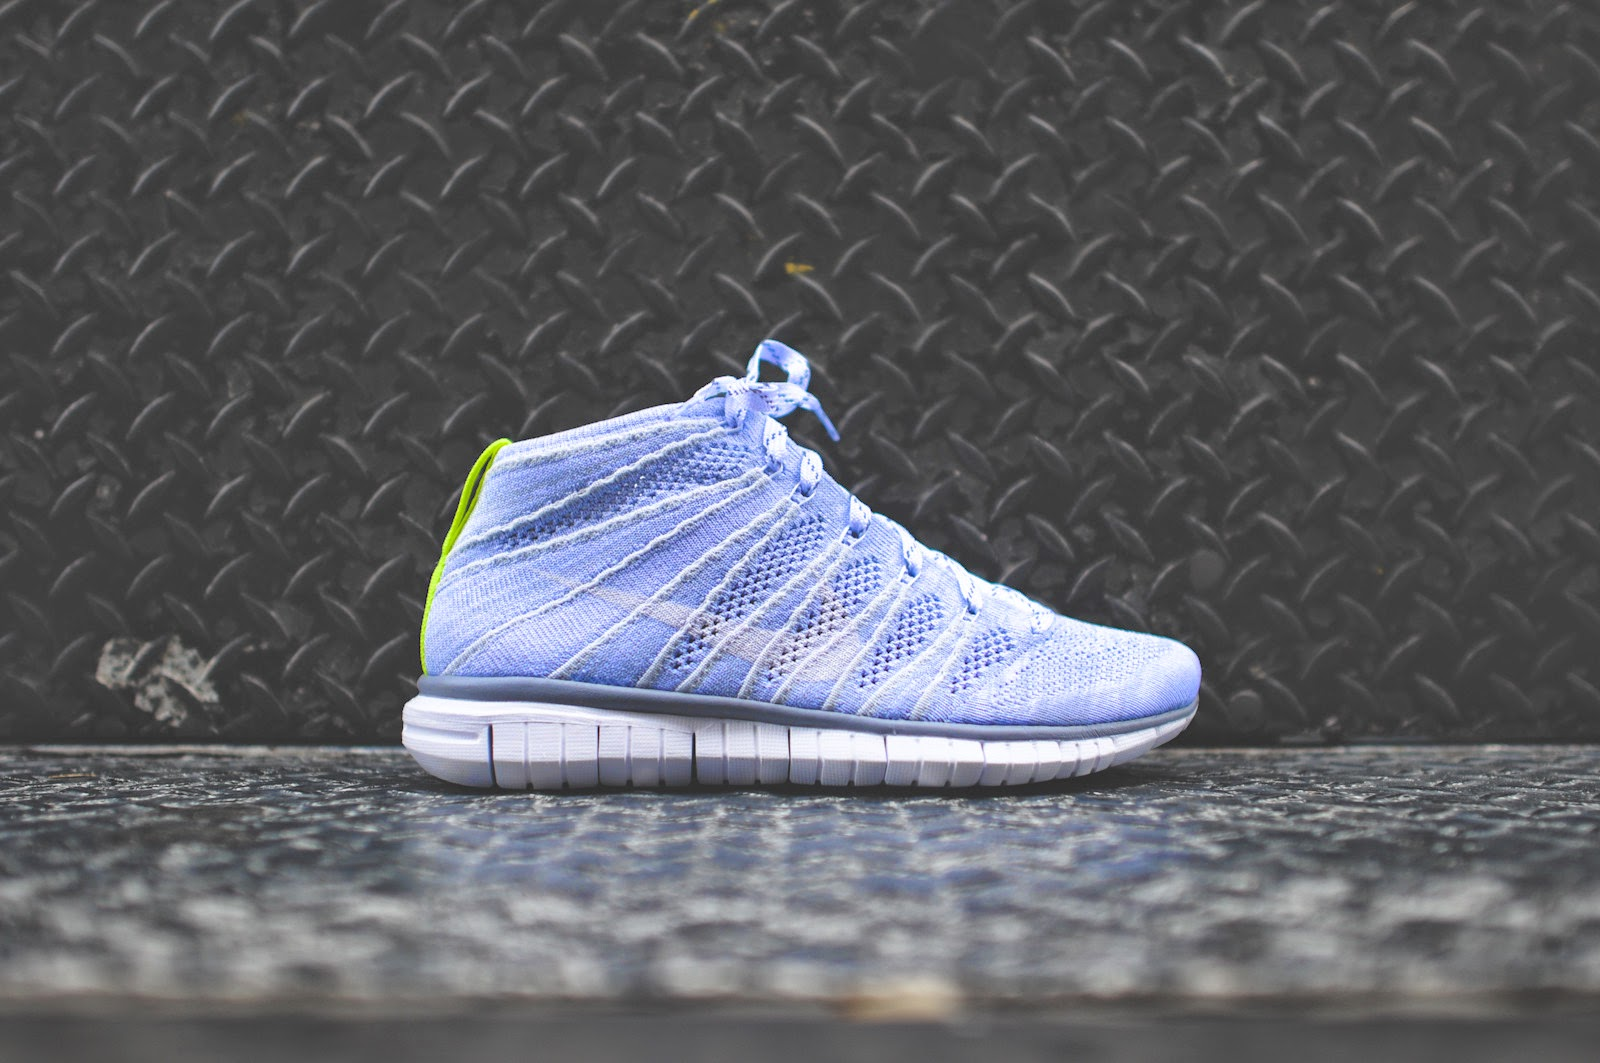 finest selection cb21a 5d449 Nike WMNS Free Flyknit Chukka - Wolf Grey   White   Nike 639699-001